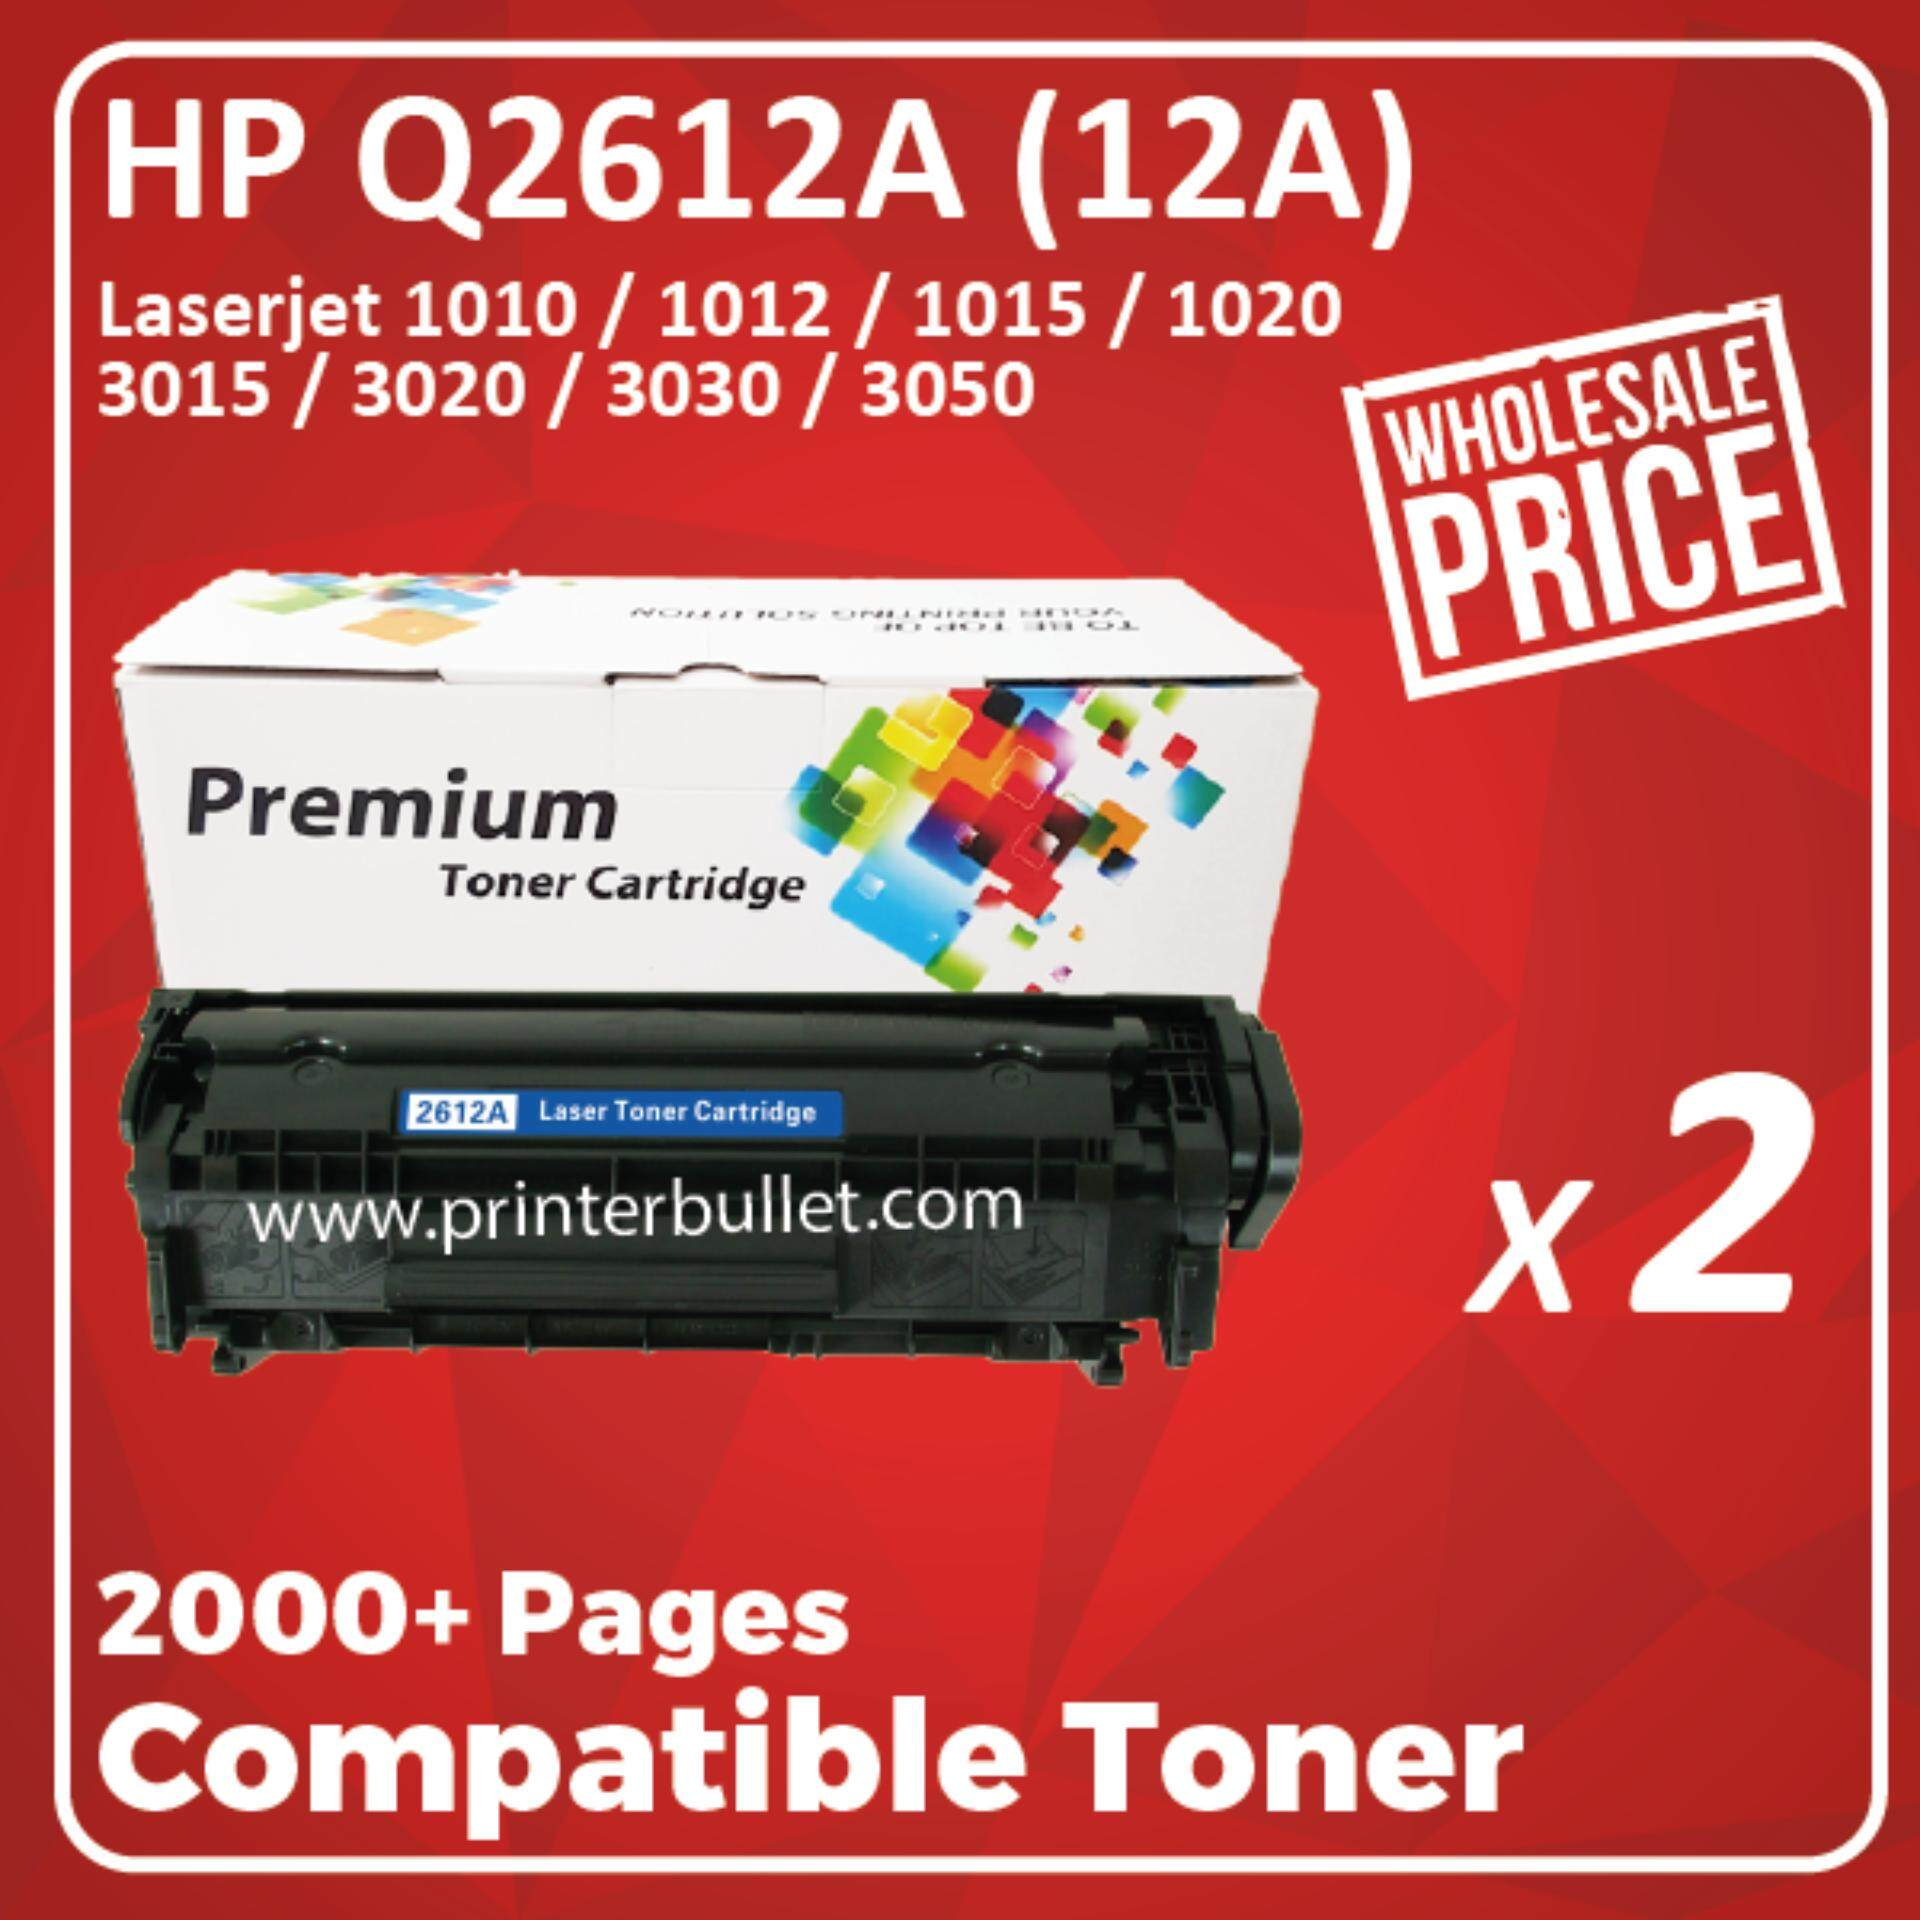 2 Unit Hp Q2612a Q2612 12a High Quality Compatible Toner Cartridge Laserjet For 1010 1012 1018 1020 1020nw 1022 1022n 1022nw 3020